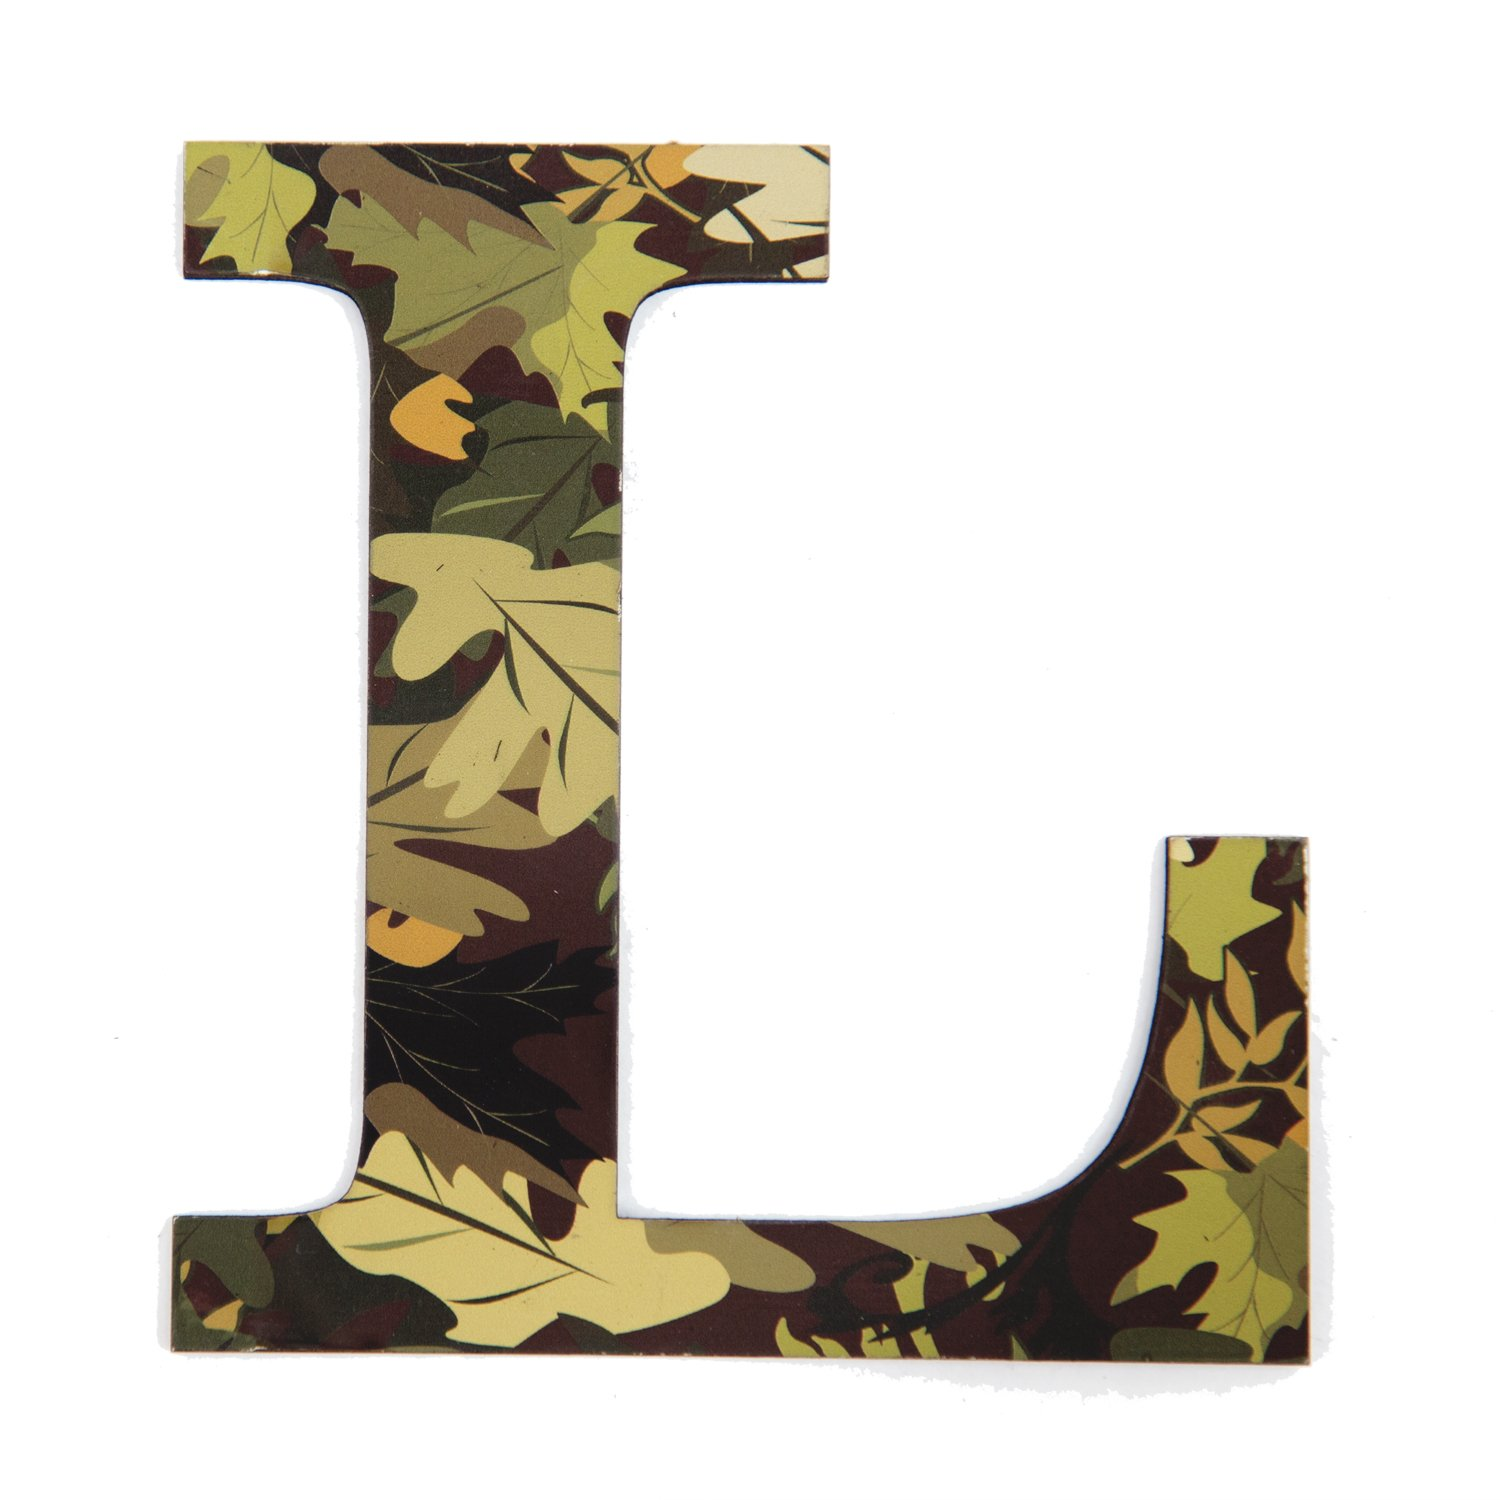 Amazon Com 11 Tall Mossy Oak Designer Camo Wall Letter L Camo Pattern 3d Wall Decor Unique Wall Initial For Living Room Bedroom Man Cave Boys Room Girls